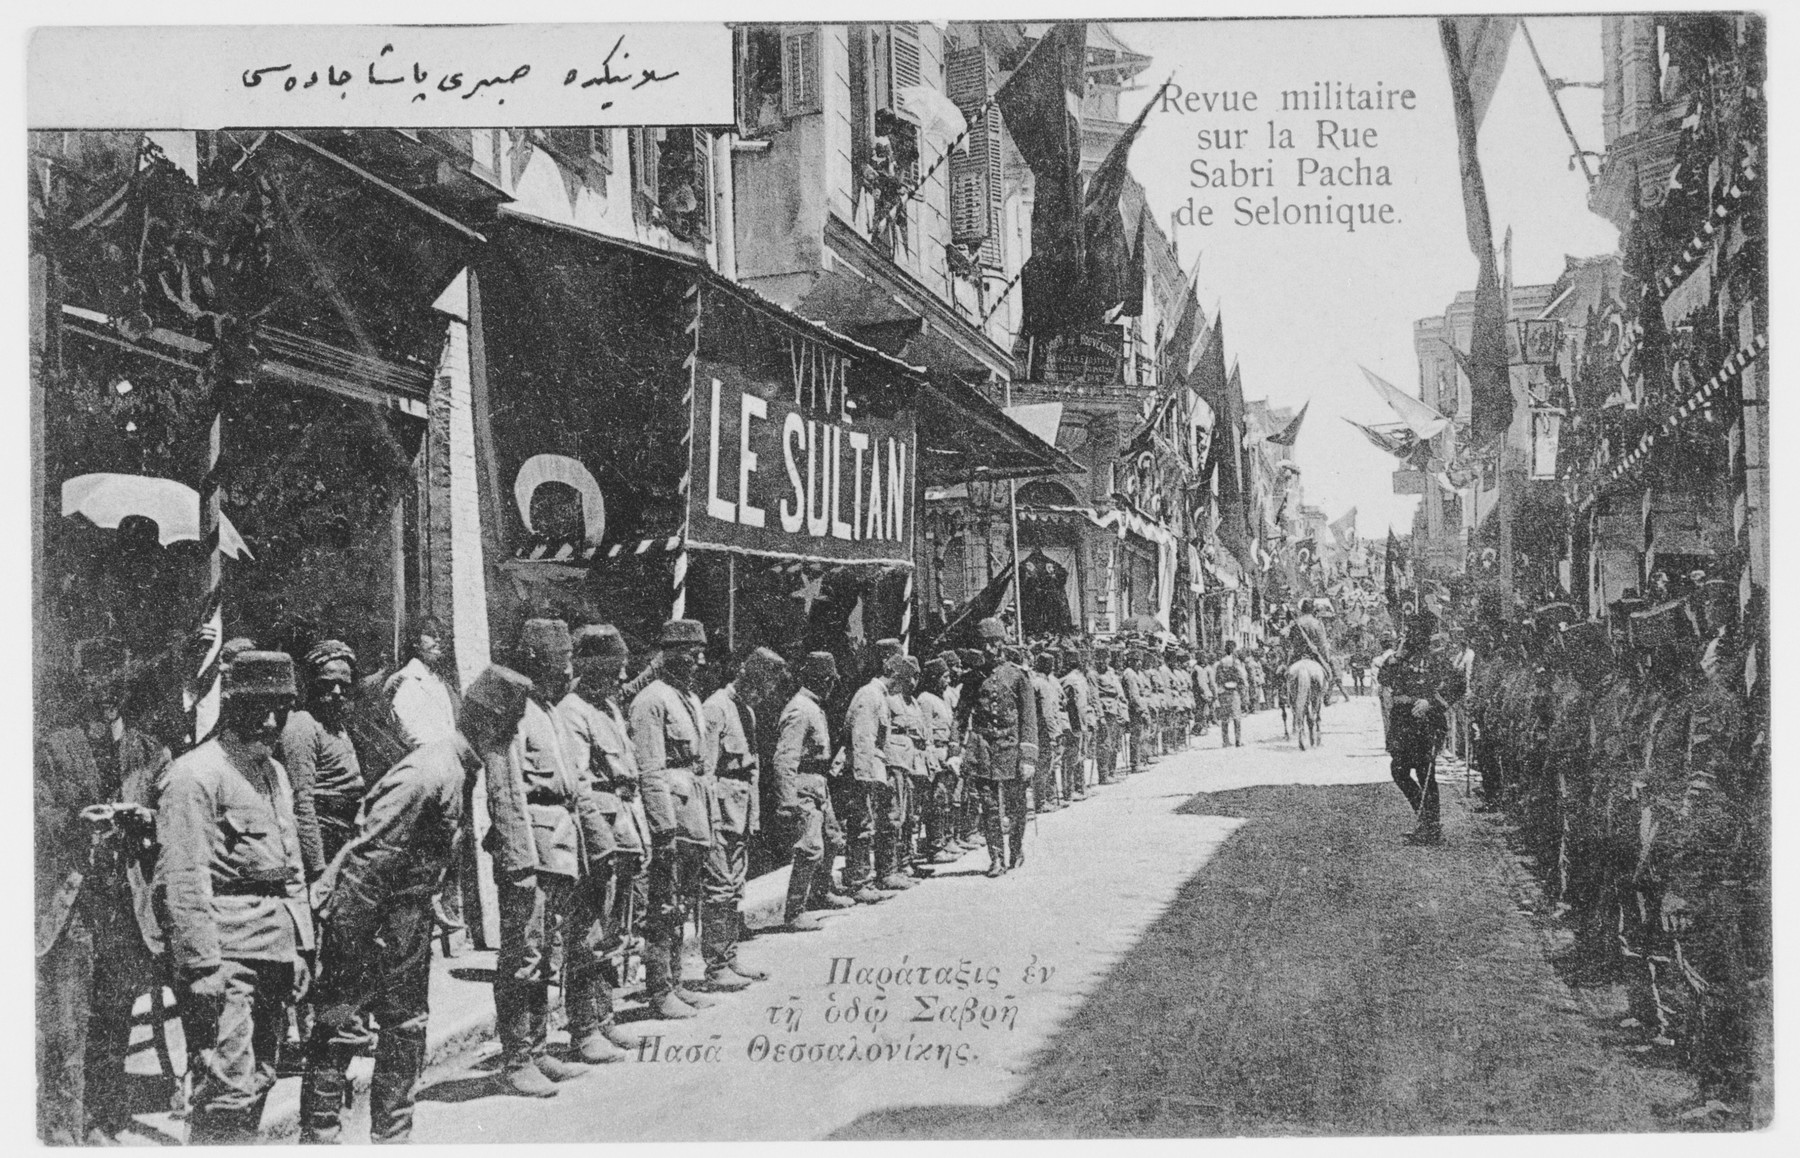 Soldiers line Sabri Pacha street in Salonika for a military review.